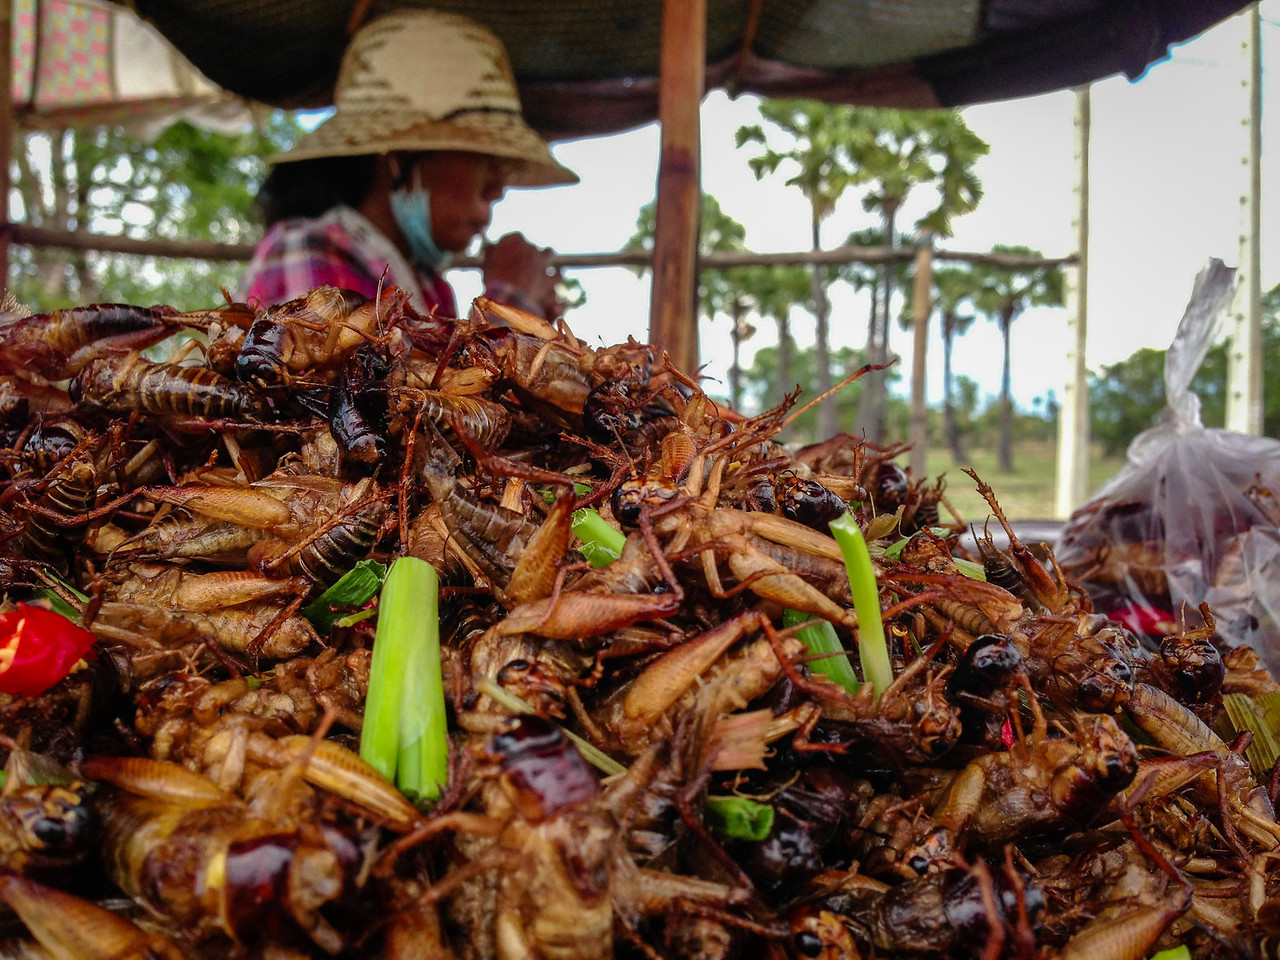 Vendor Selling Edible Crickets by the Road in Cambodia